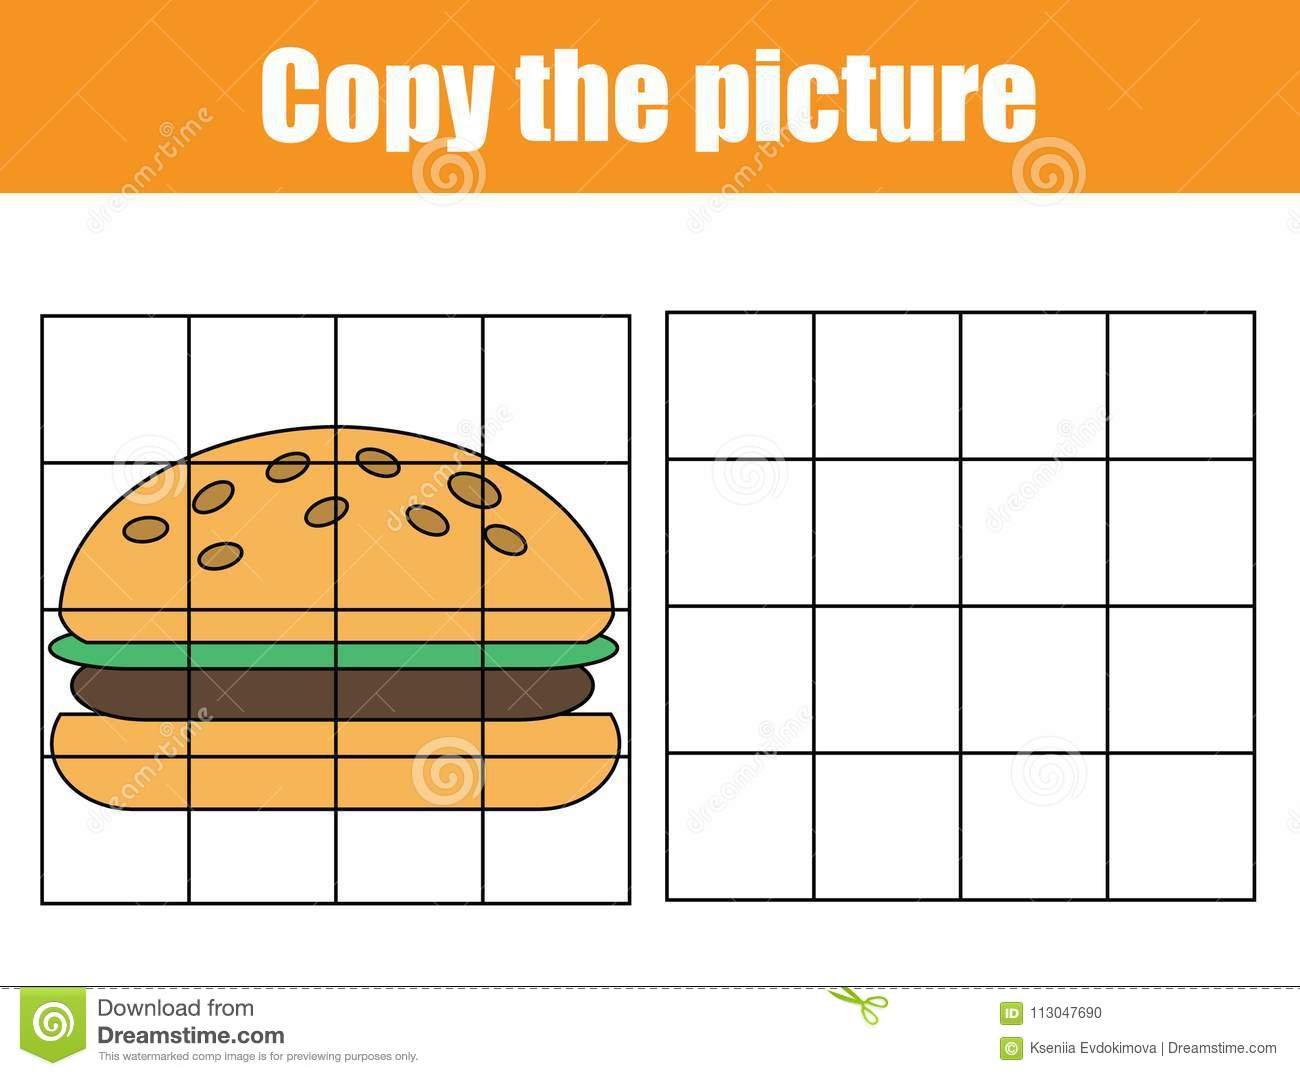 Grid Copy Worksheet Educational Children Game Printable Kids Activity Sheet With Yummy Burger